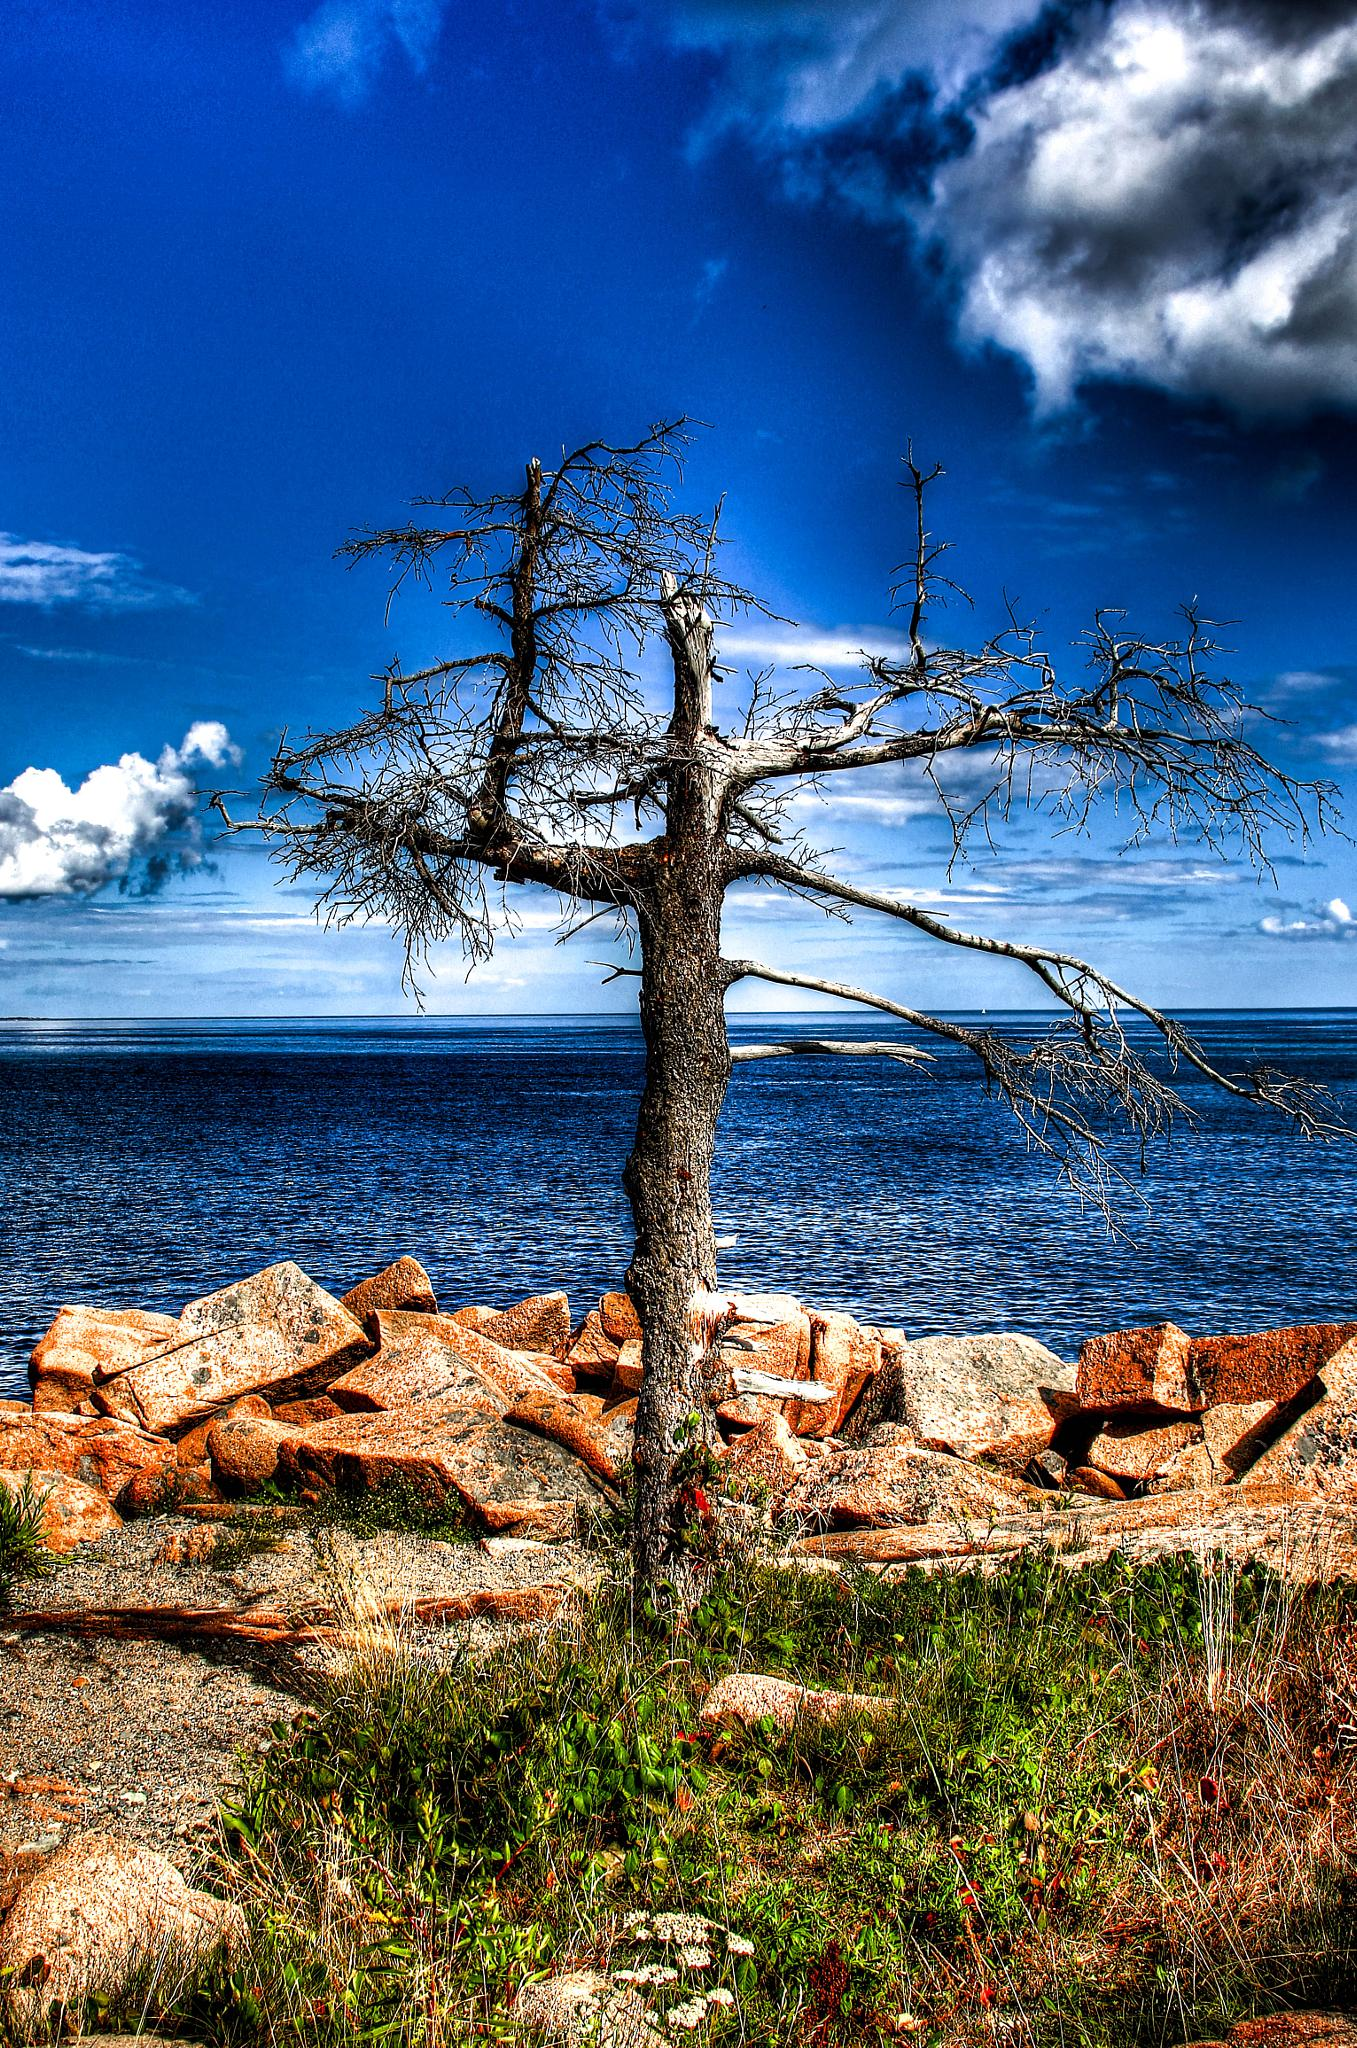 Dead tree by Peggy Berger